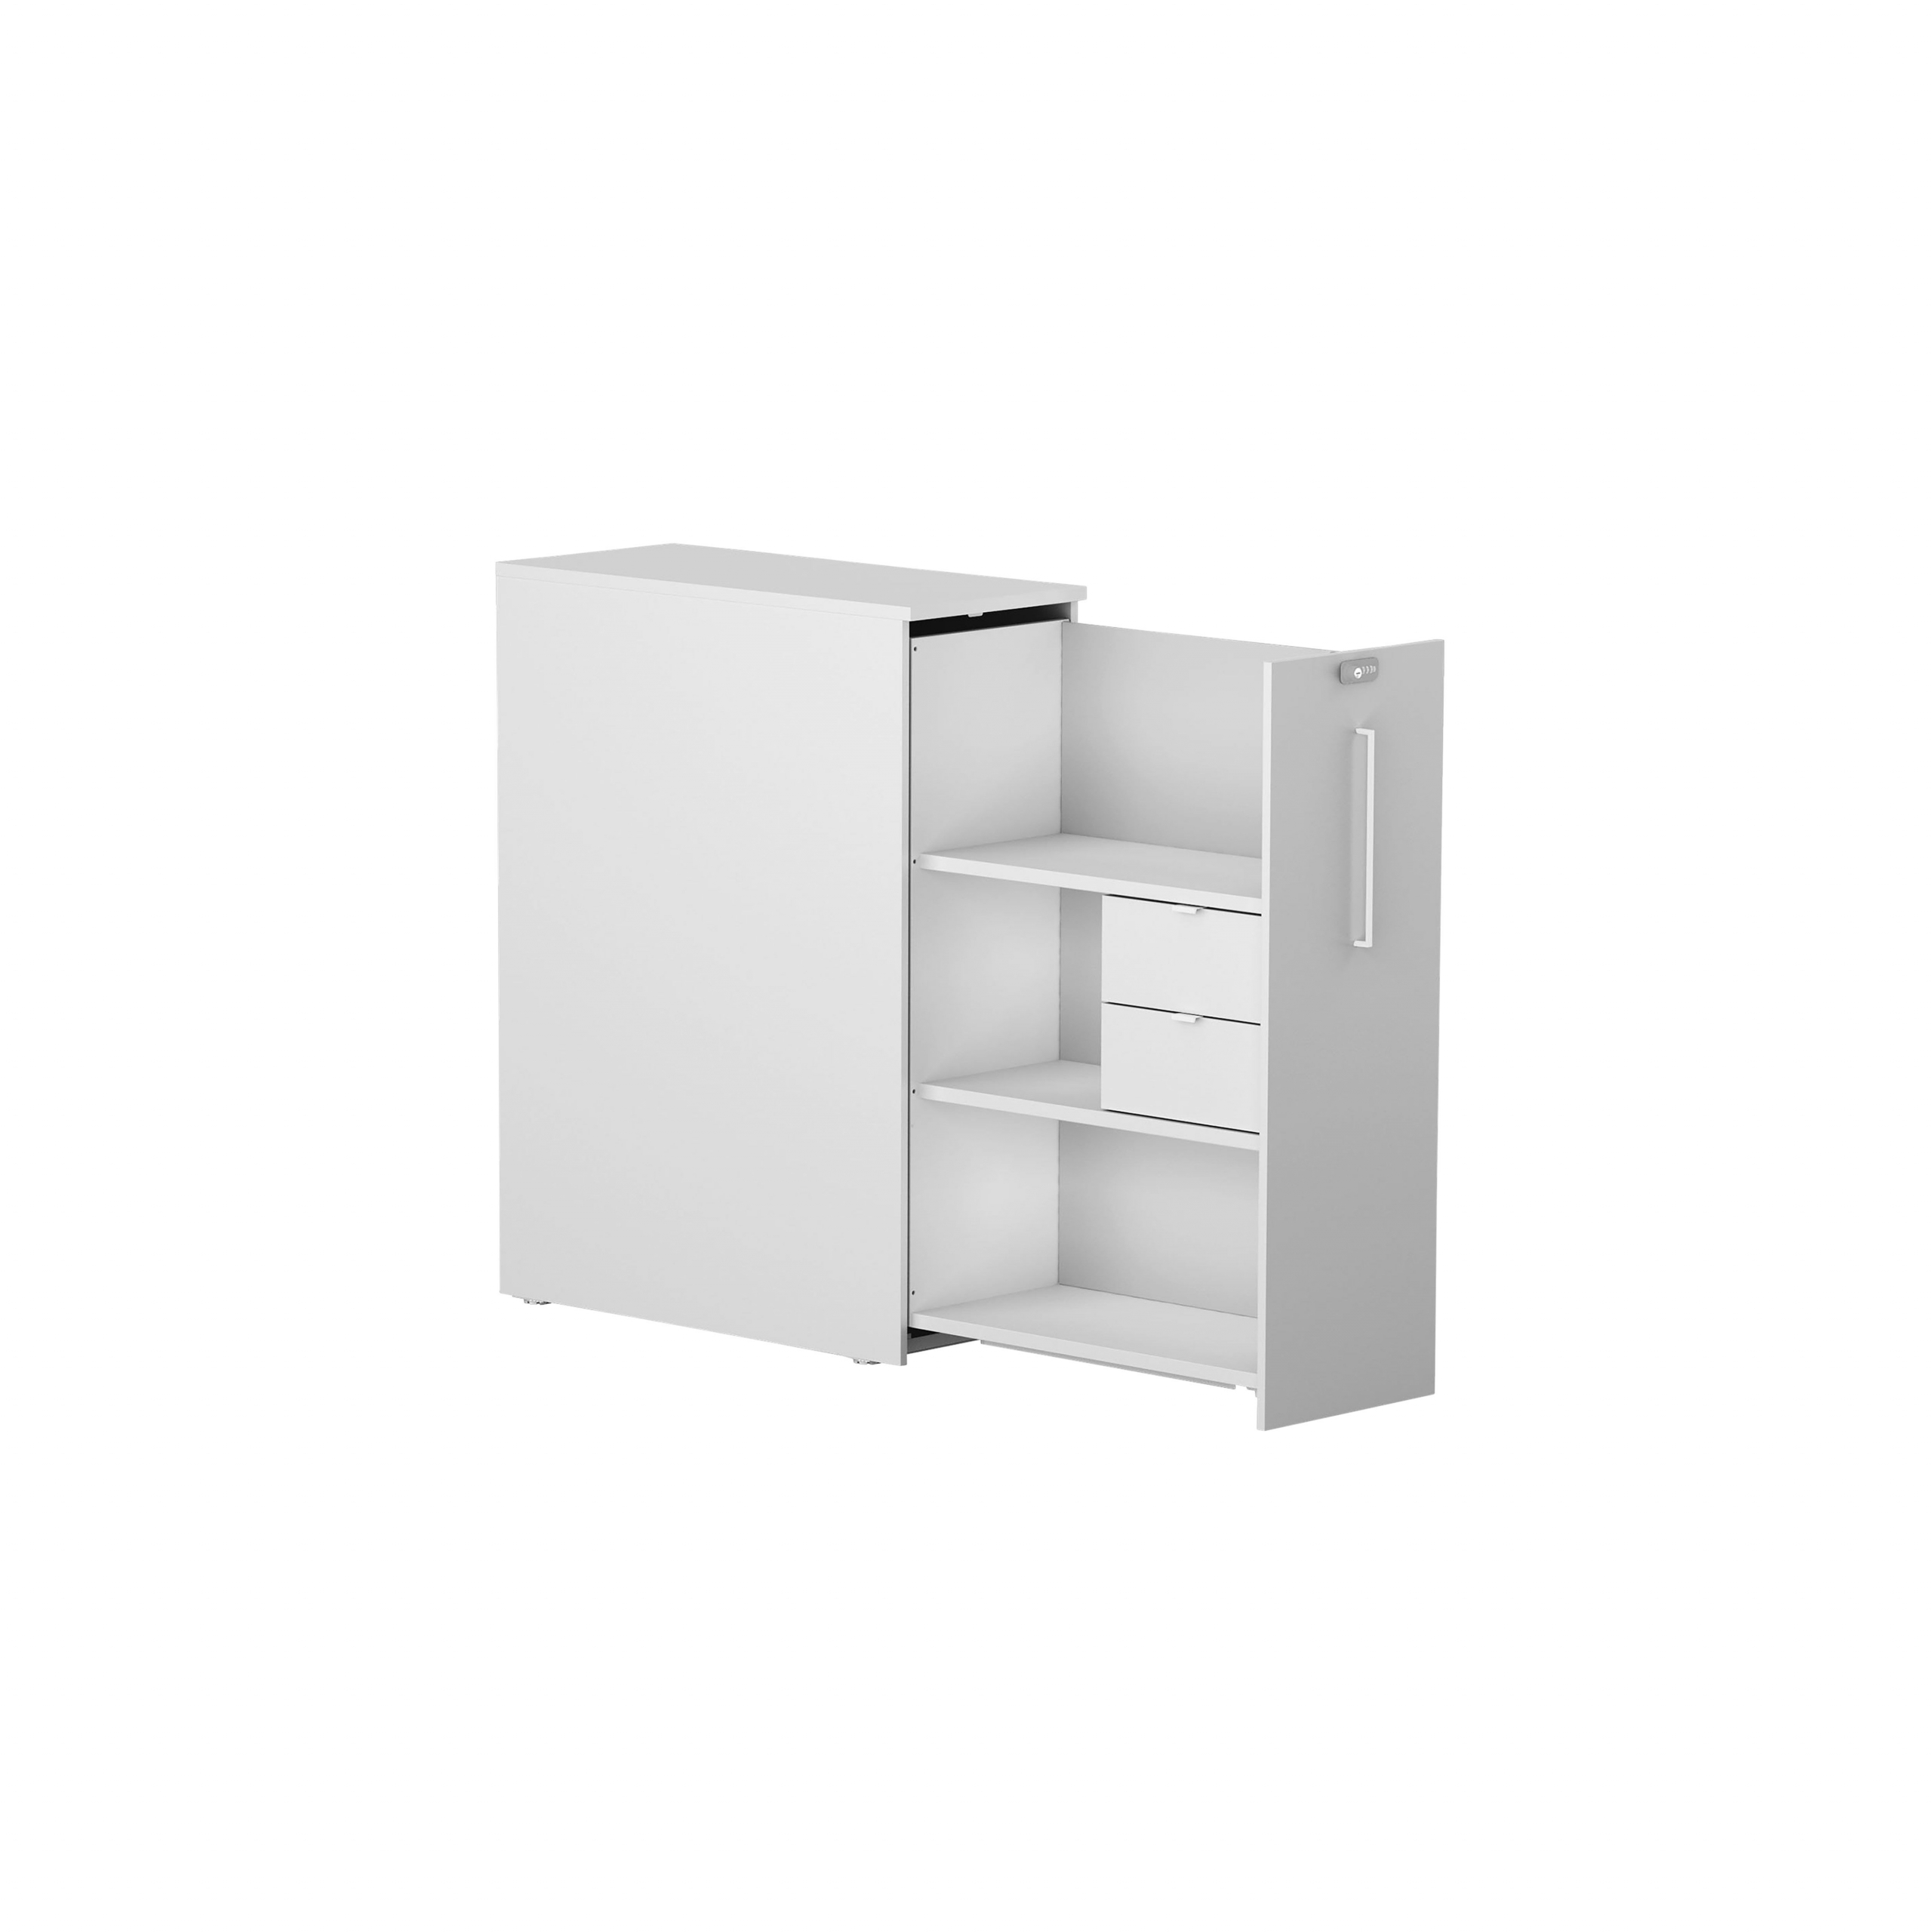 Hold Tower cabinet product image 2